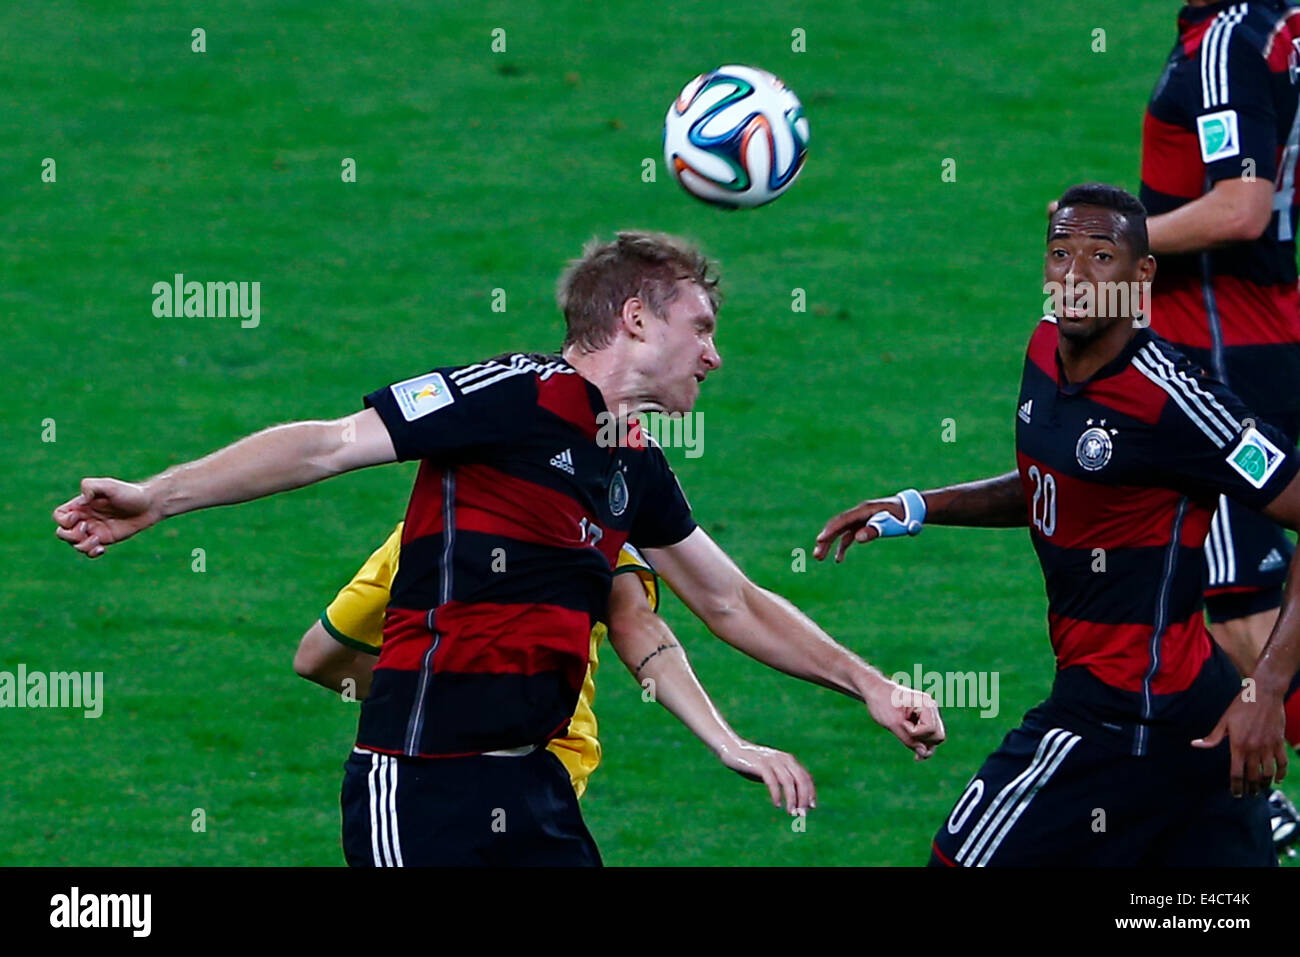 Belo Horizonte, Brazil. 8th July, 2014. Germany's Per Mertesacker (front, L) heads the ball during a semifinal match Stock Photo